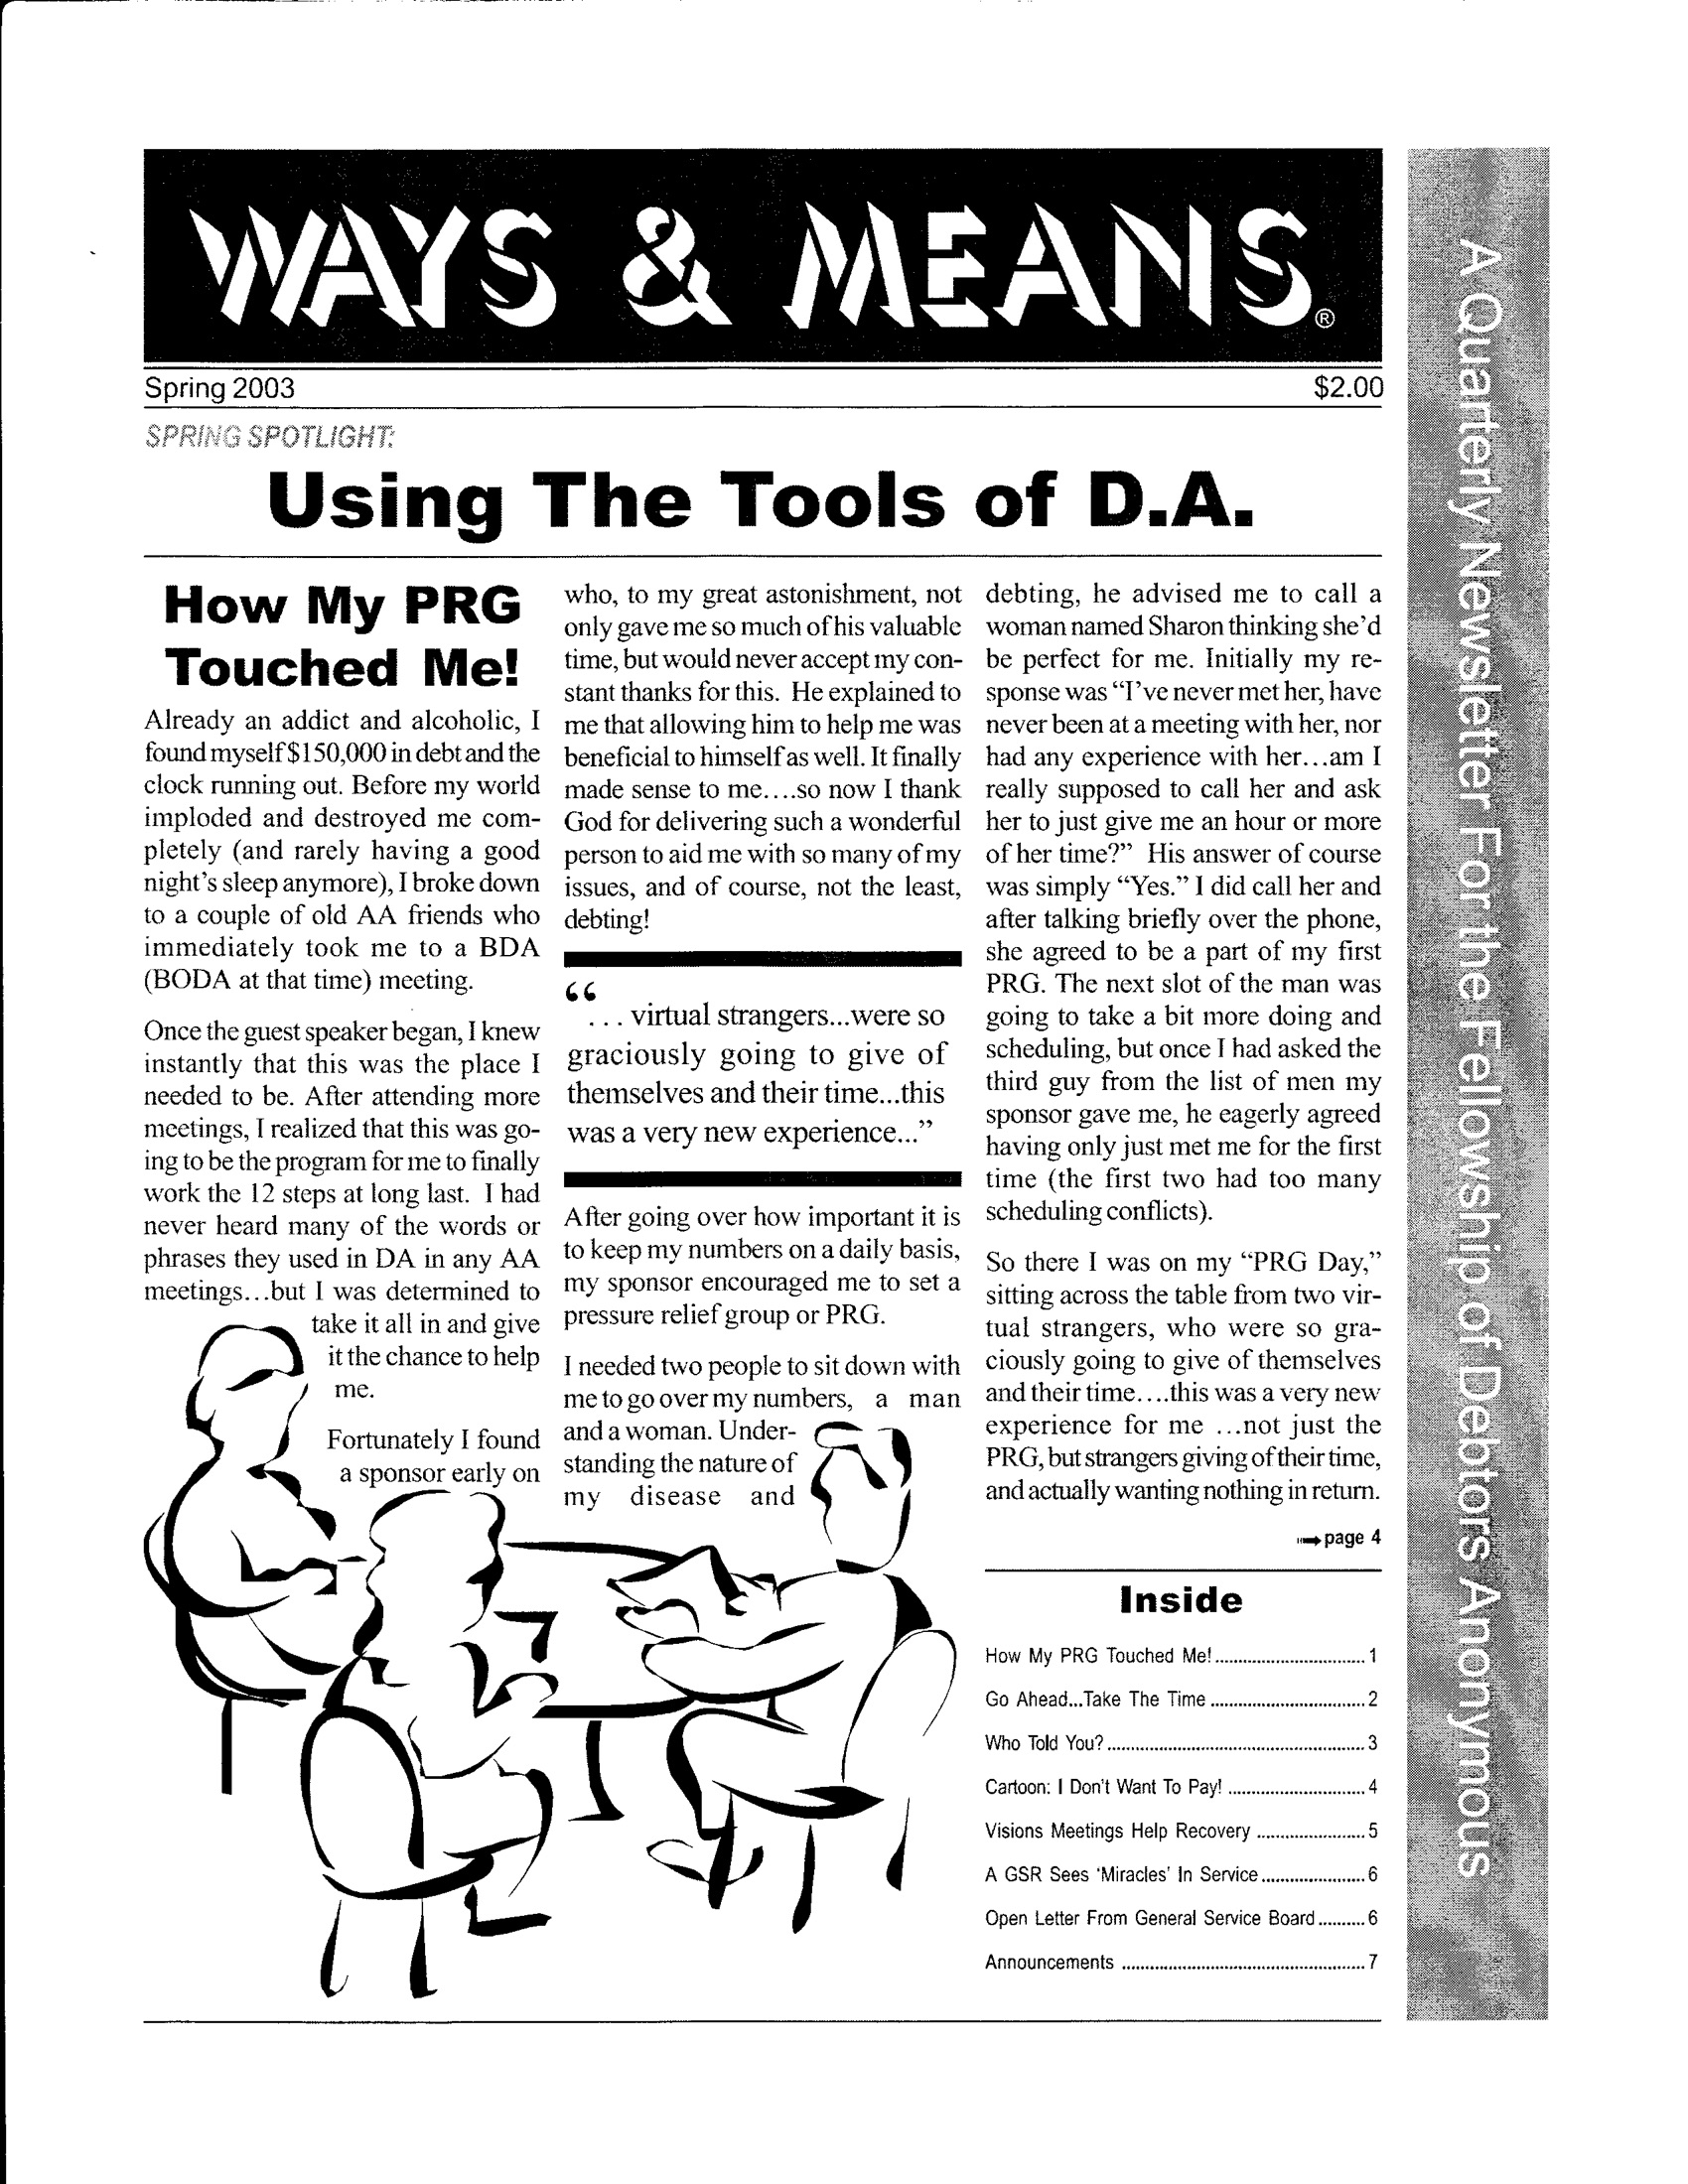 Ways & Means 2nd QTR 2003